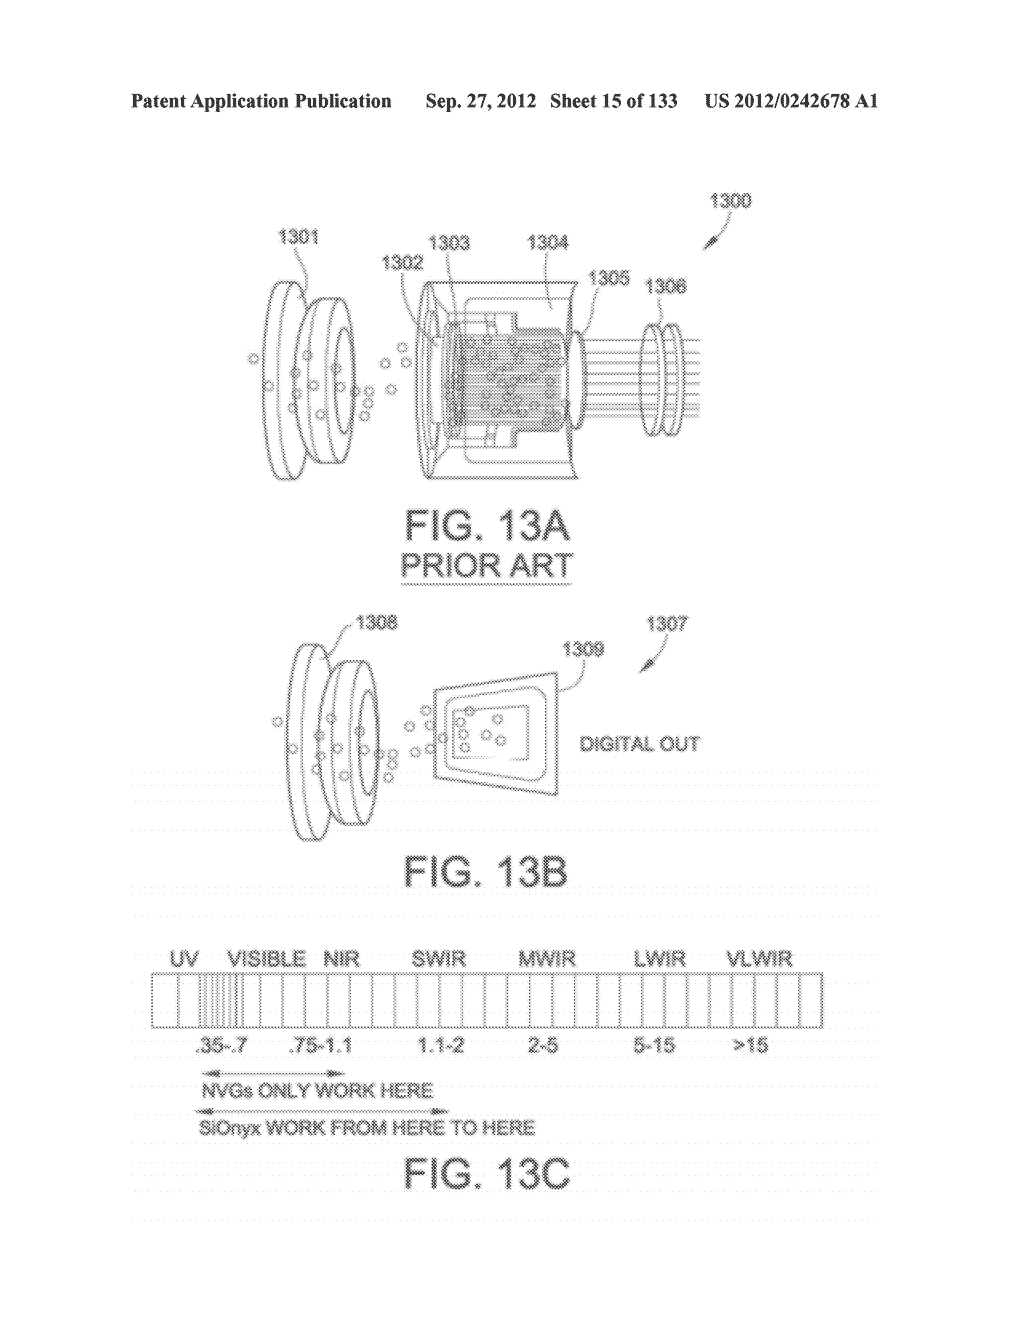 SEE-THROUGH NEAR-EYE DISPLAY GLASSES INCLUDING AN AUTO-BRIGHTNESS CONTROL     FOR THE DISPLAY BRIGHTNESS BASED ON THE BRIGHTNESS IN THE ENVIRONMENT - diagram, schematic, and image 16